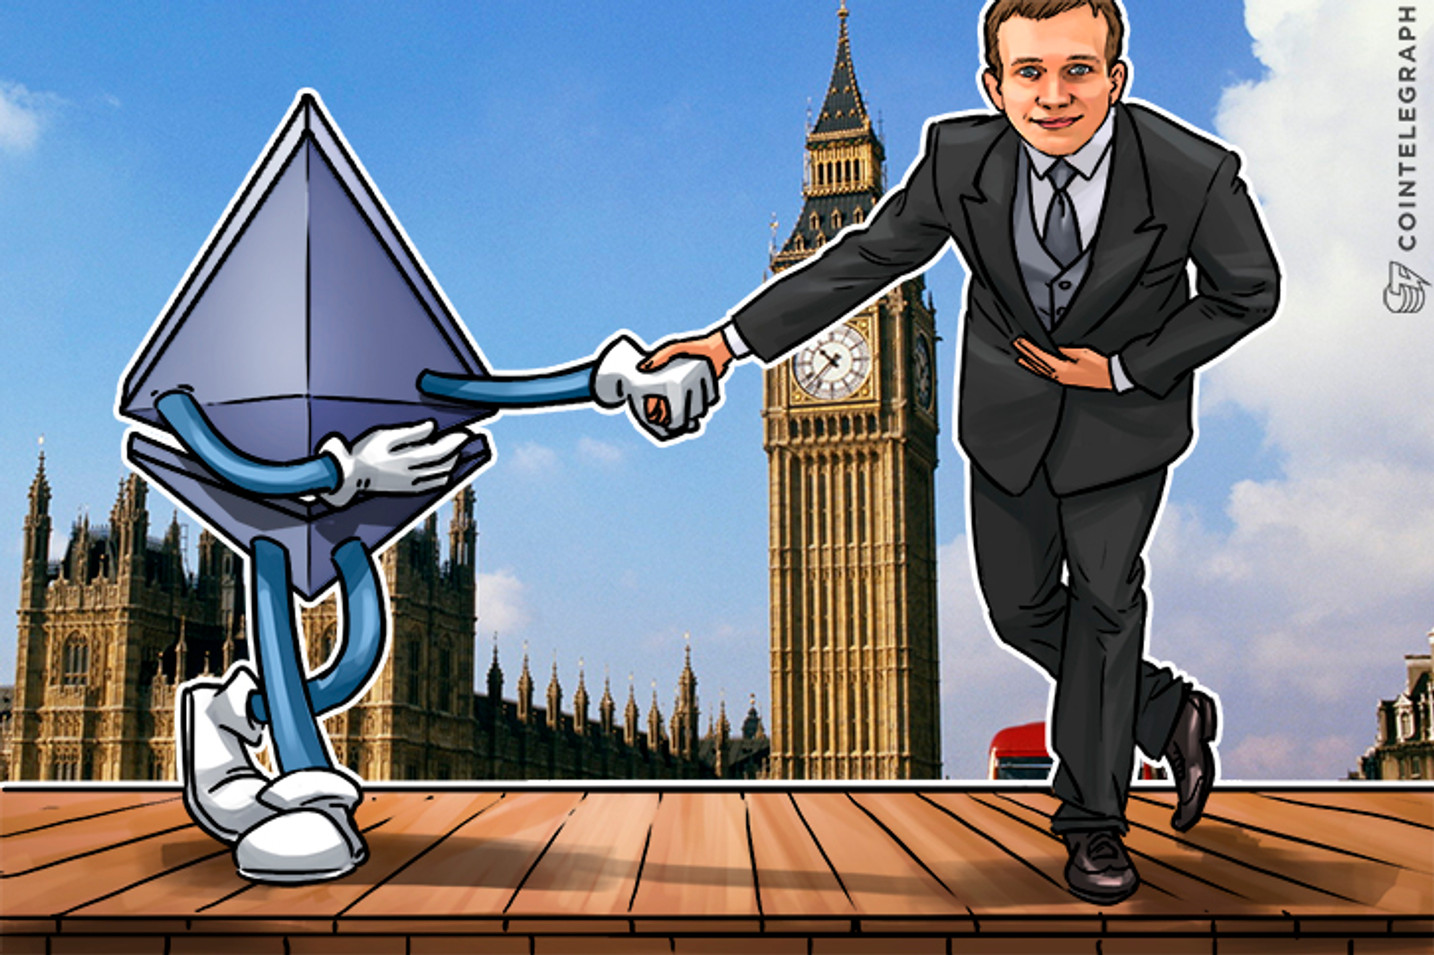 London Scene Round Up: Ethereum Meetup, Criminal Coin ICO & Satoshi in Wimbledon